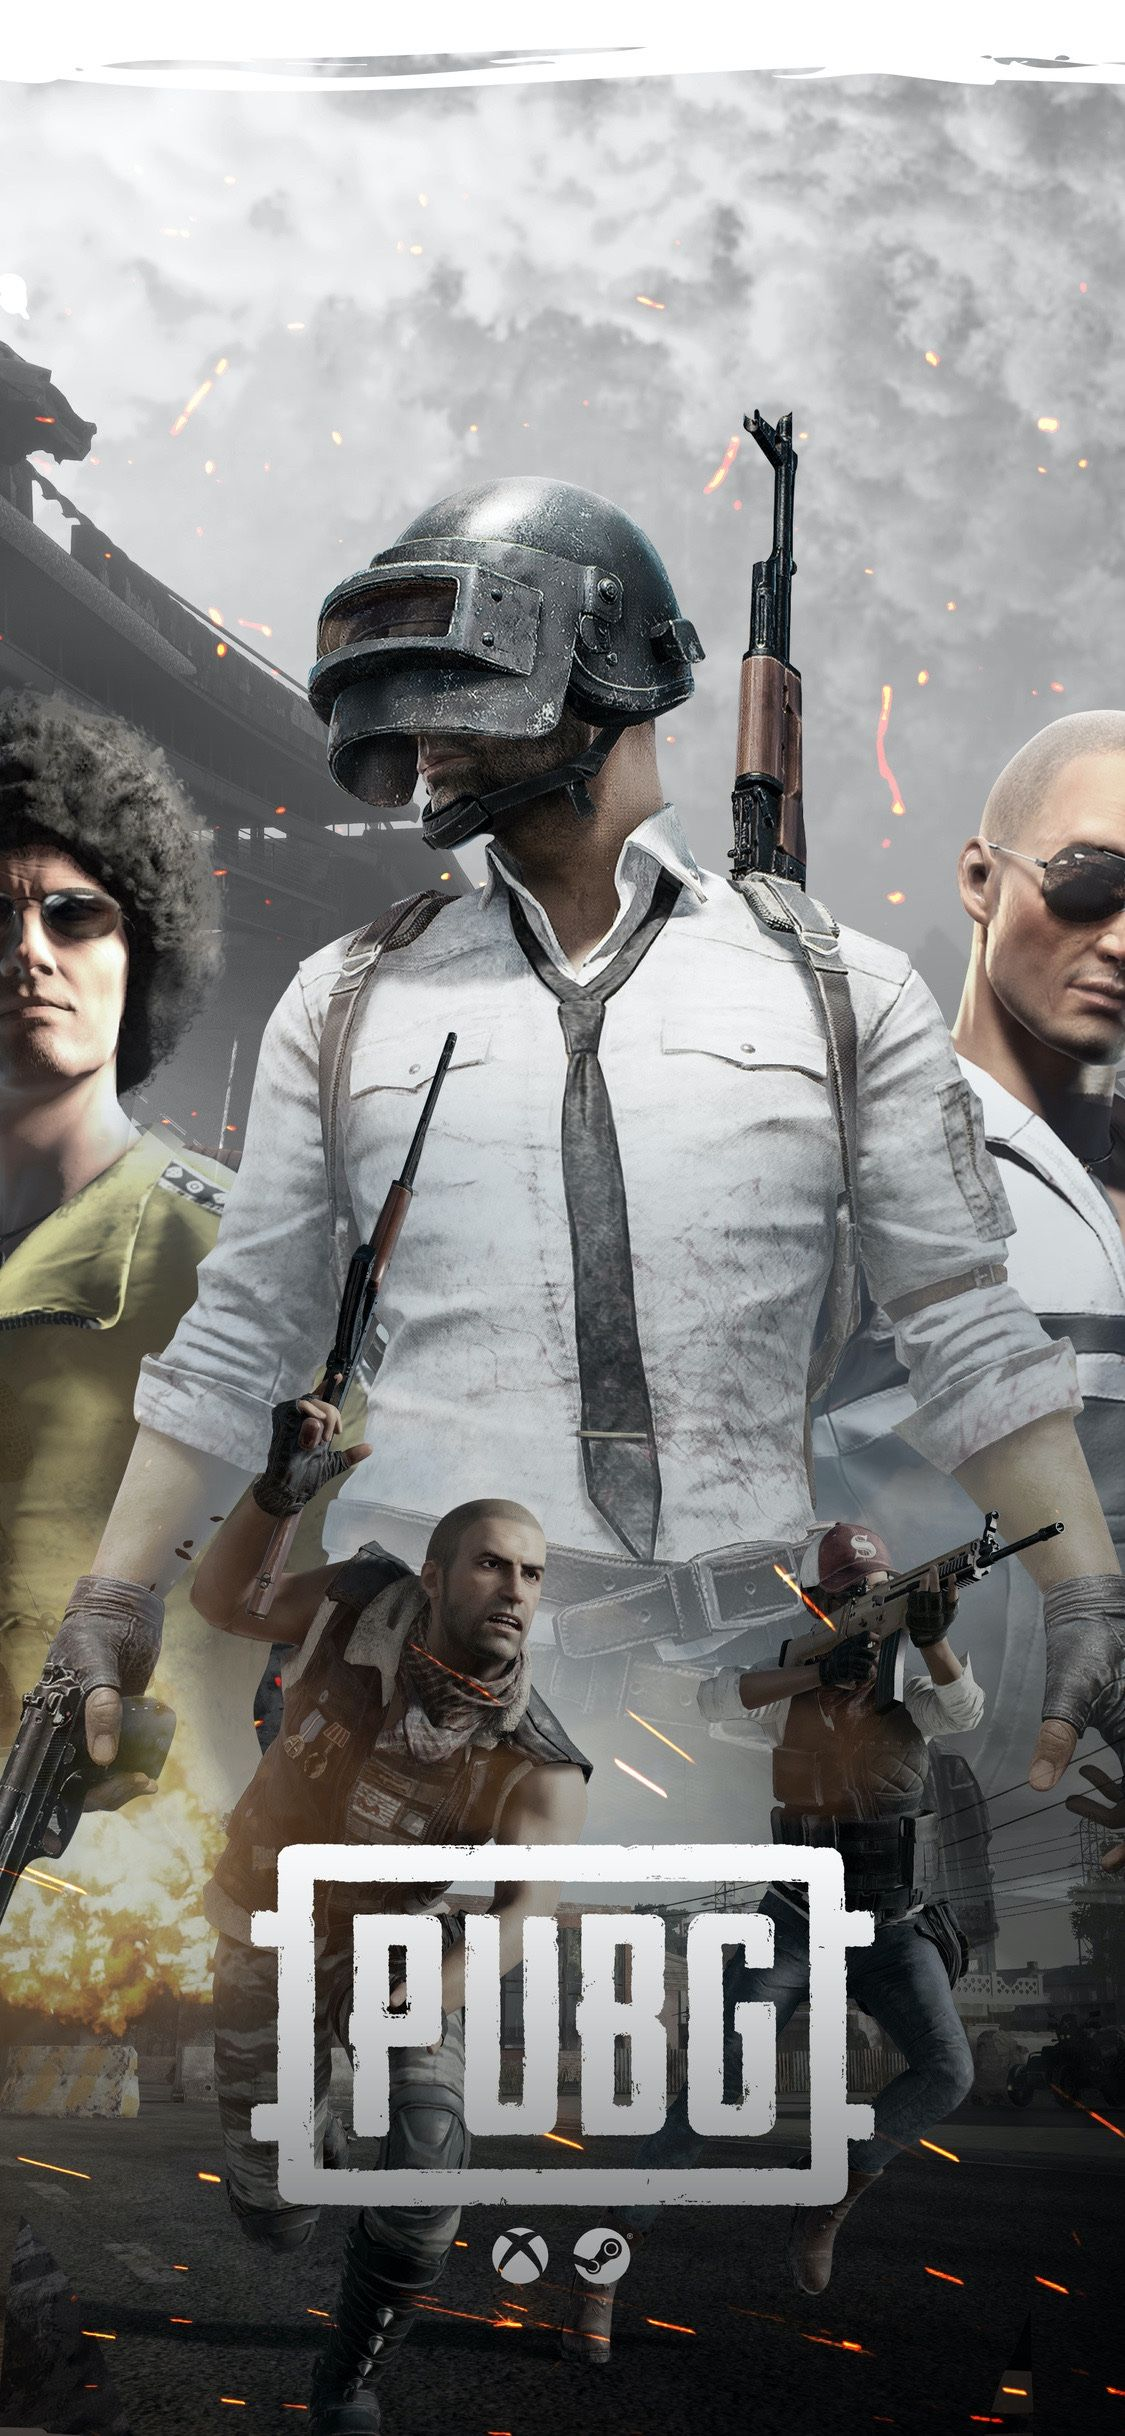 لعبة ببجي Pubg Game Wallpaper Most Beautiful Wallpaper Beautiful Wallpapers